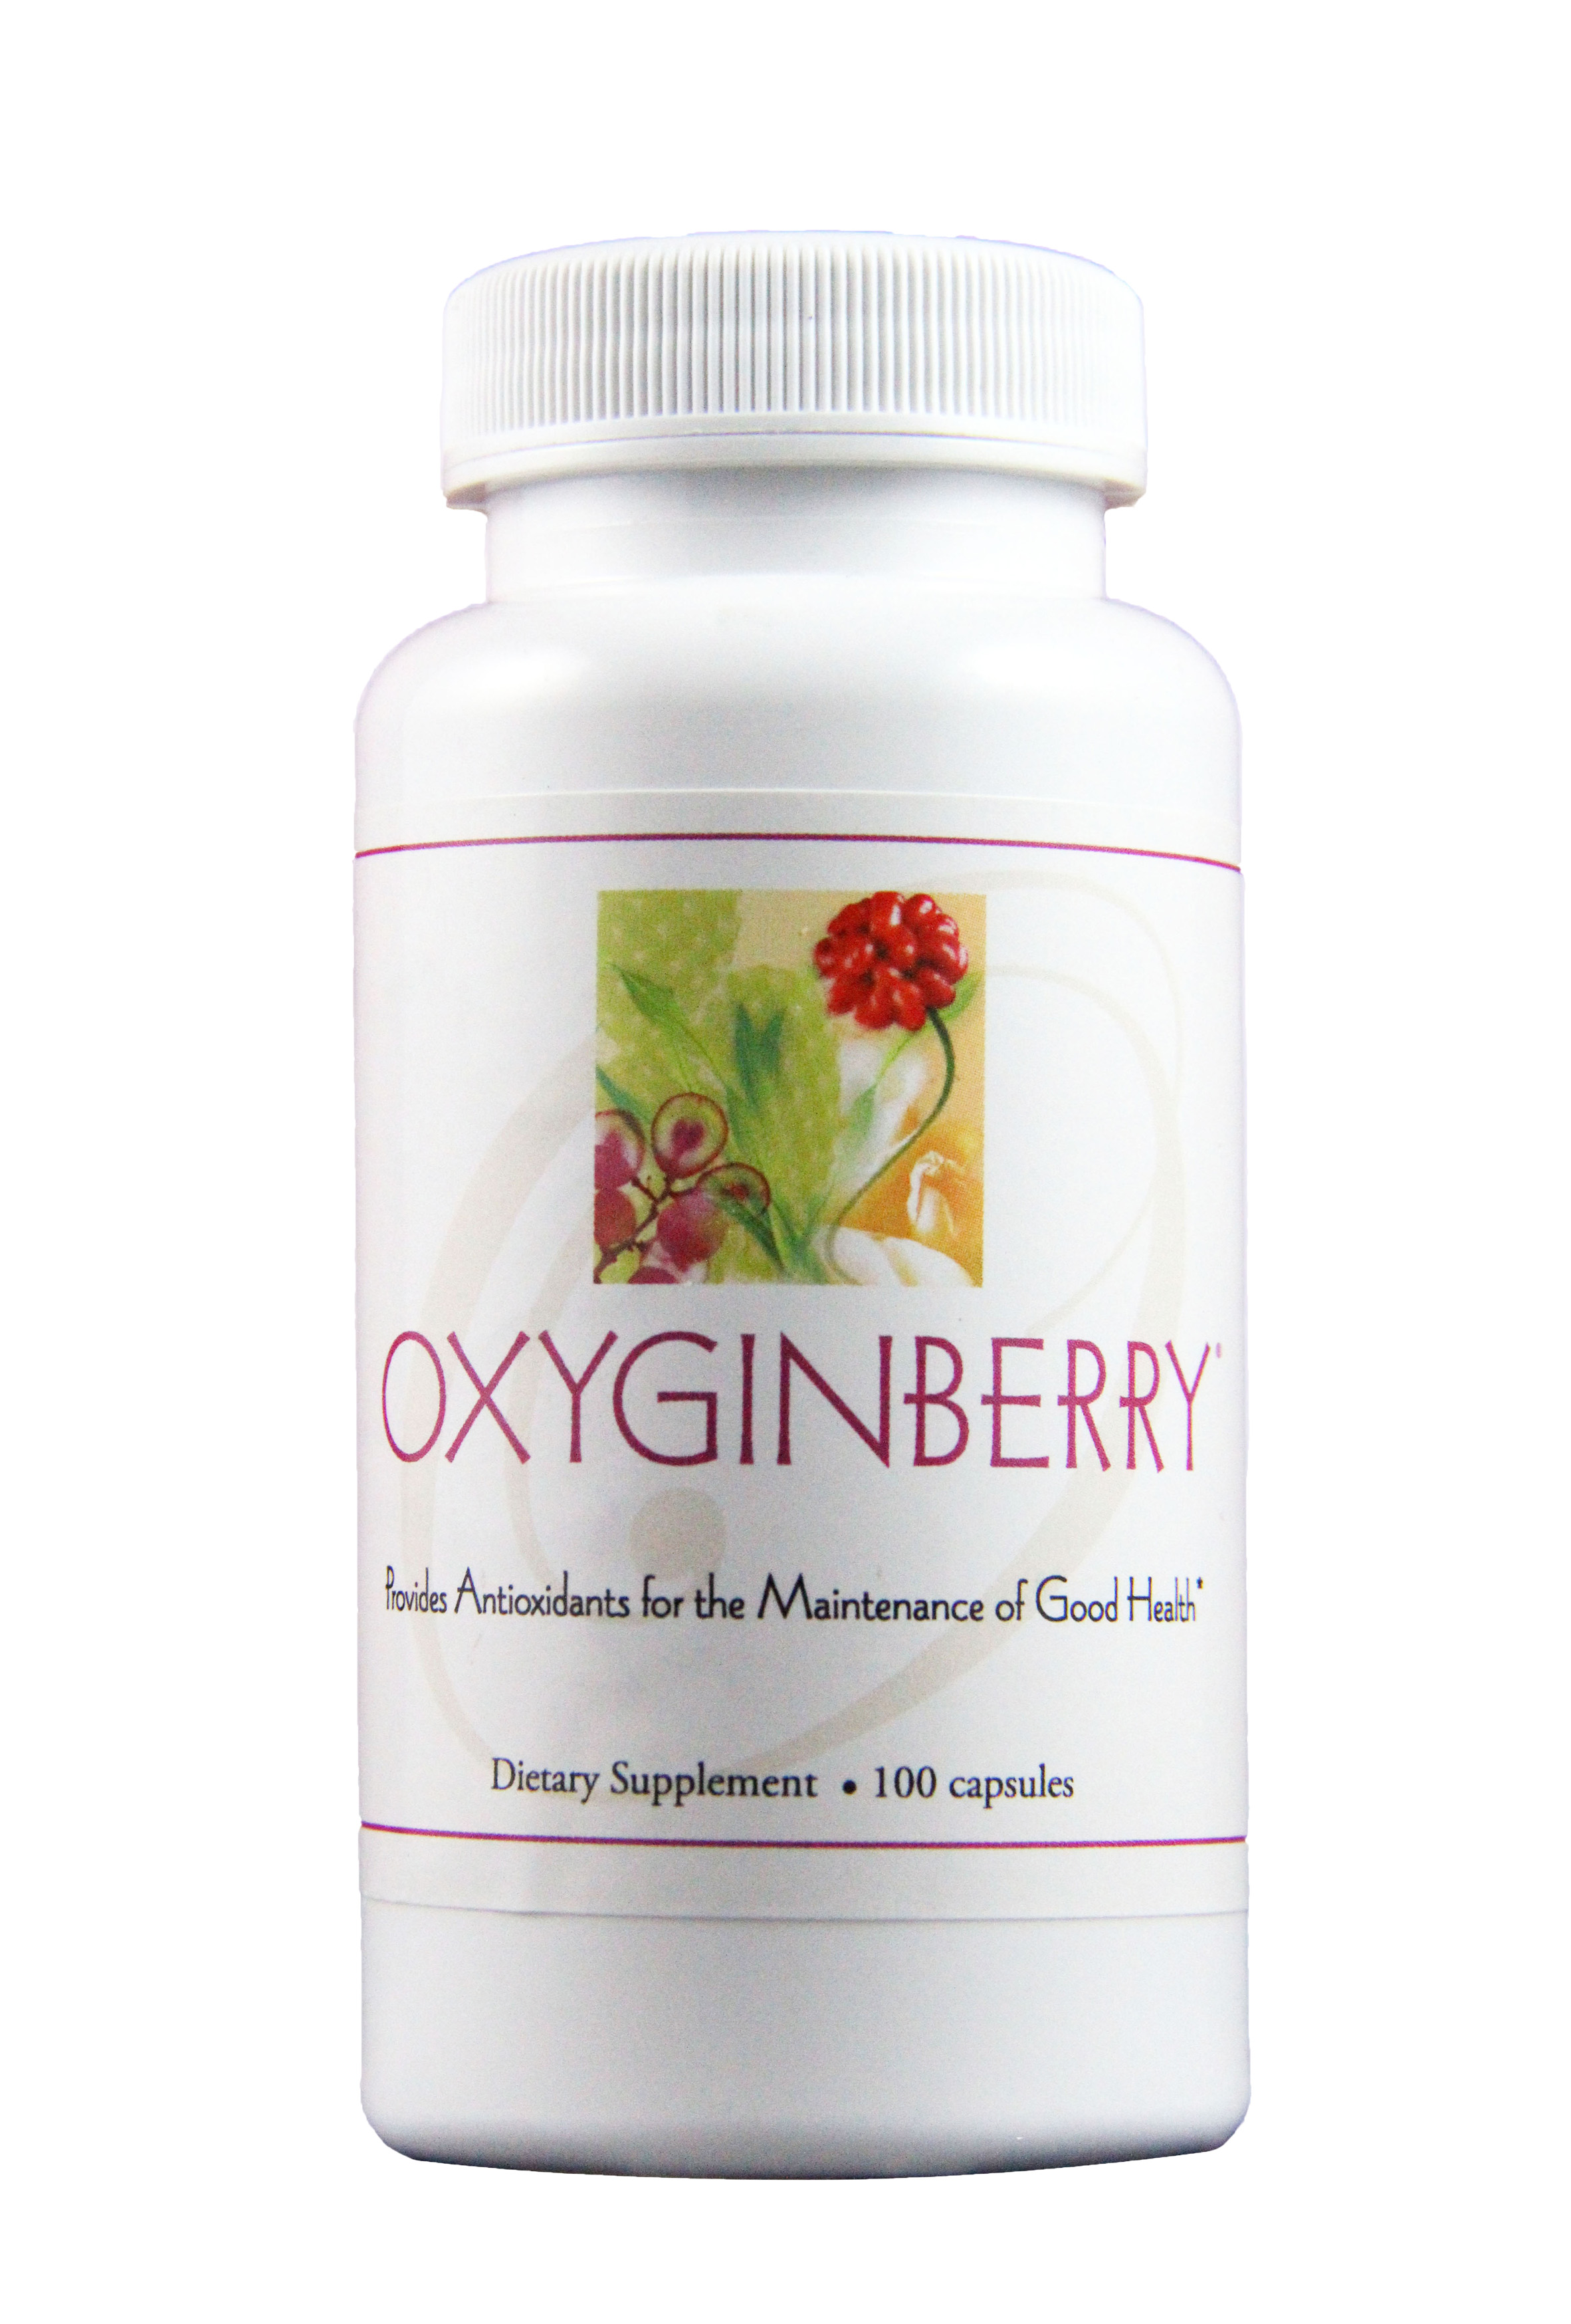 oxyginberry - BEAUTIFUL SKIN REQUIRES NOURISHMENT FROM THE INSIDE OUT. OXYGINBERRY CAPSULES ARE CAREFULLY FORMULATED WITH PRECIOUS BOTANICALS FOR OPTIMAL NOURISHMENT TO HELP SKIN RADIATE HEALTH AND BEAUTY. SUITABLE FOR DAILY CONSUMPTION*Featured Ingredients: Prickly Pear Cactus Pad & Fruit, Panax Ginseng, Seaweed, Rose, Grape seed200 capsules–2 bottles| Code: 30105